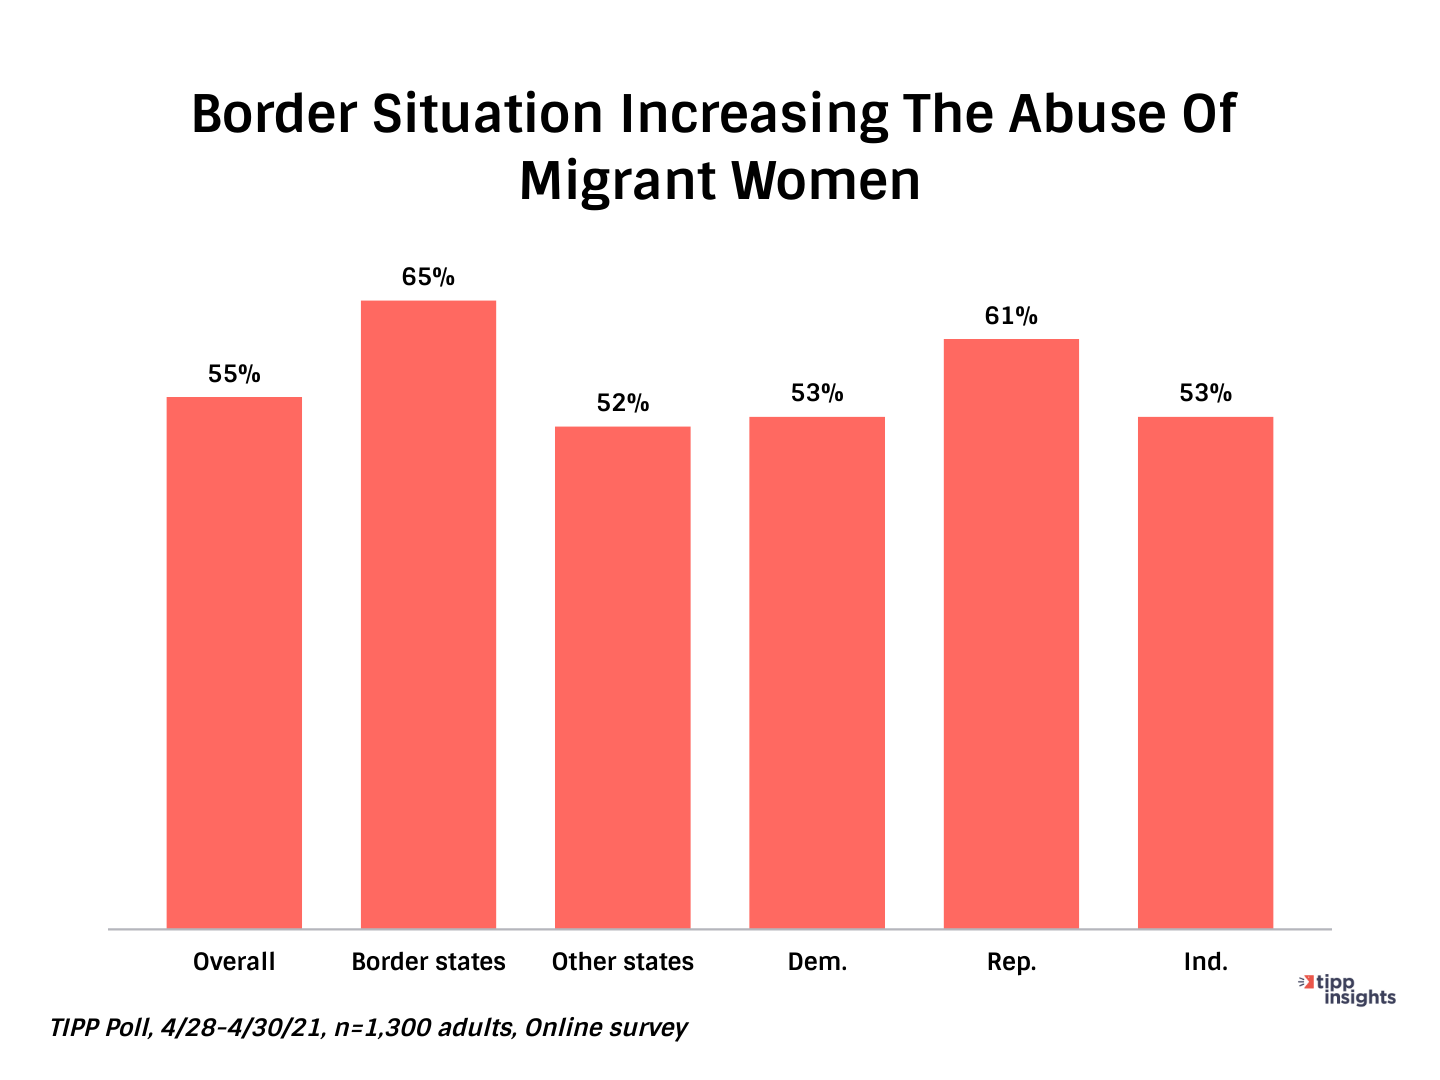 TIPP Poll Results: Border Situation Break Down on the abuse of migrant women